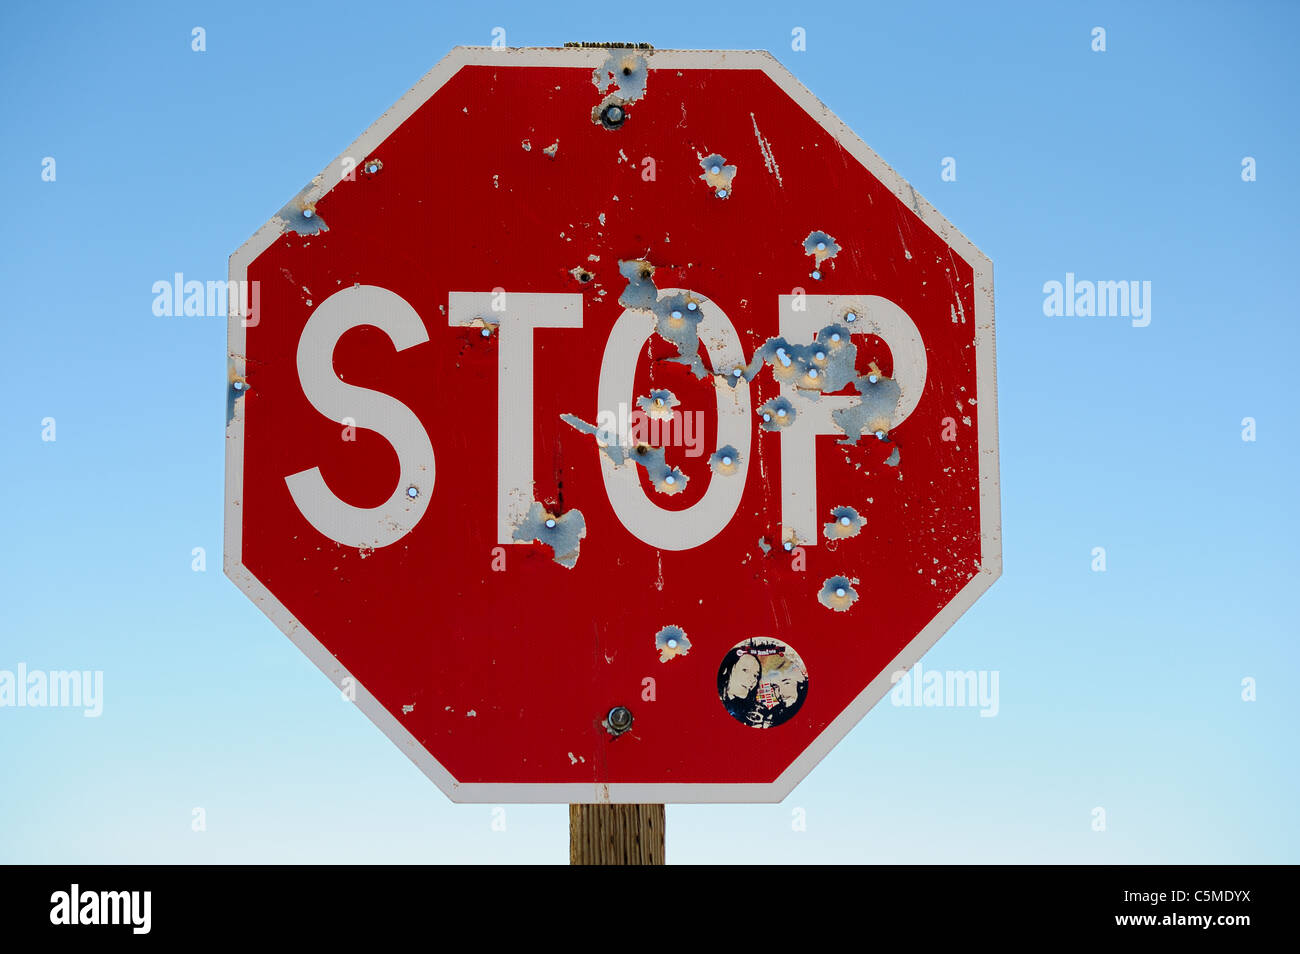 Bullet Holes in a Stop sign on a road in desert near Monument Valley Navajo Tribal Park in Utah, USA - Stock Image